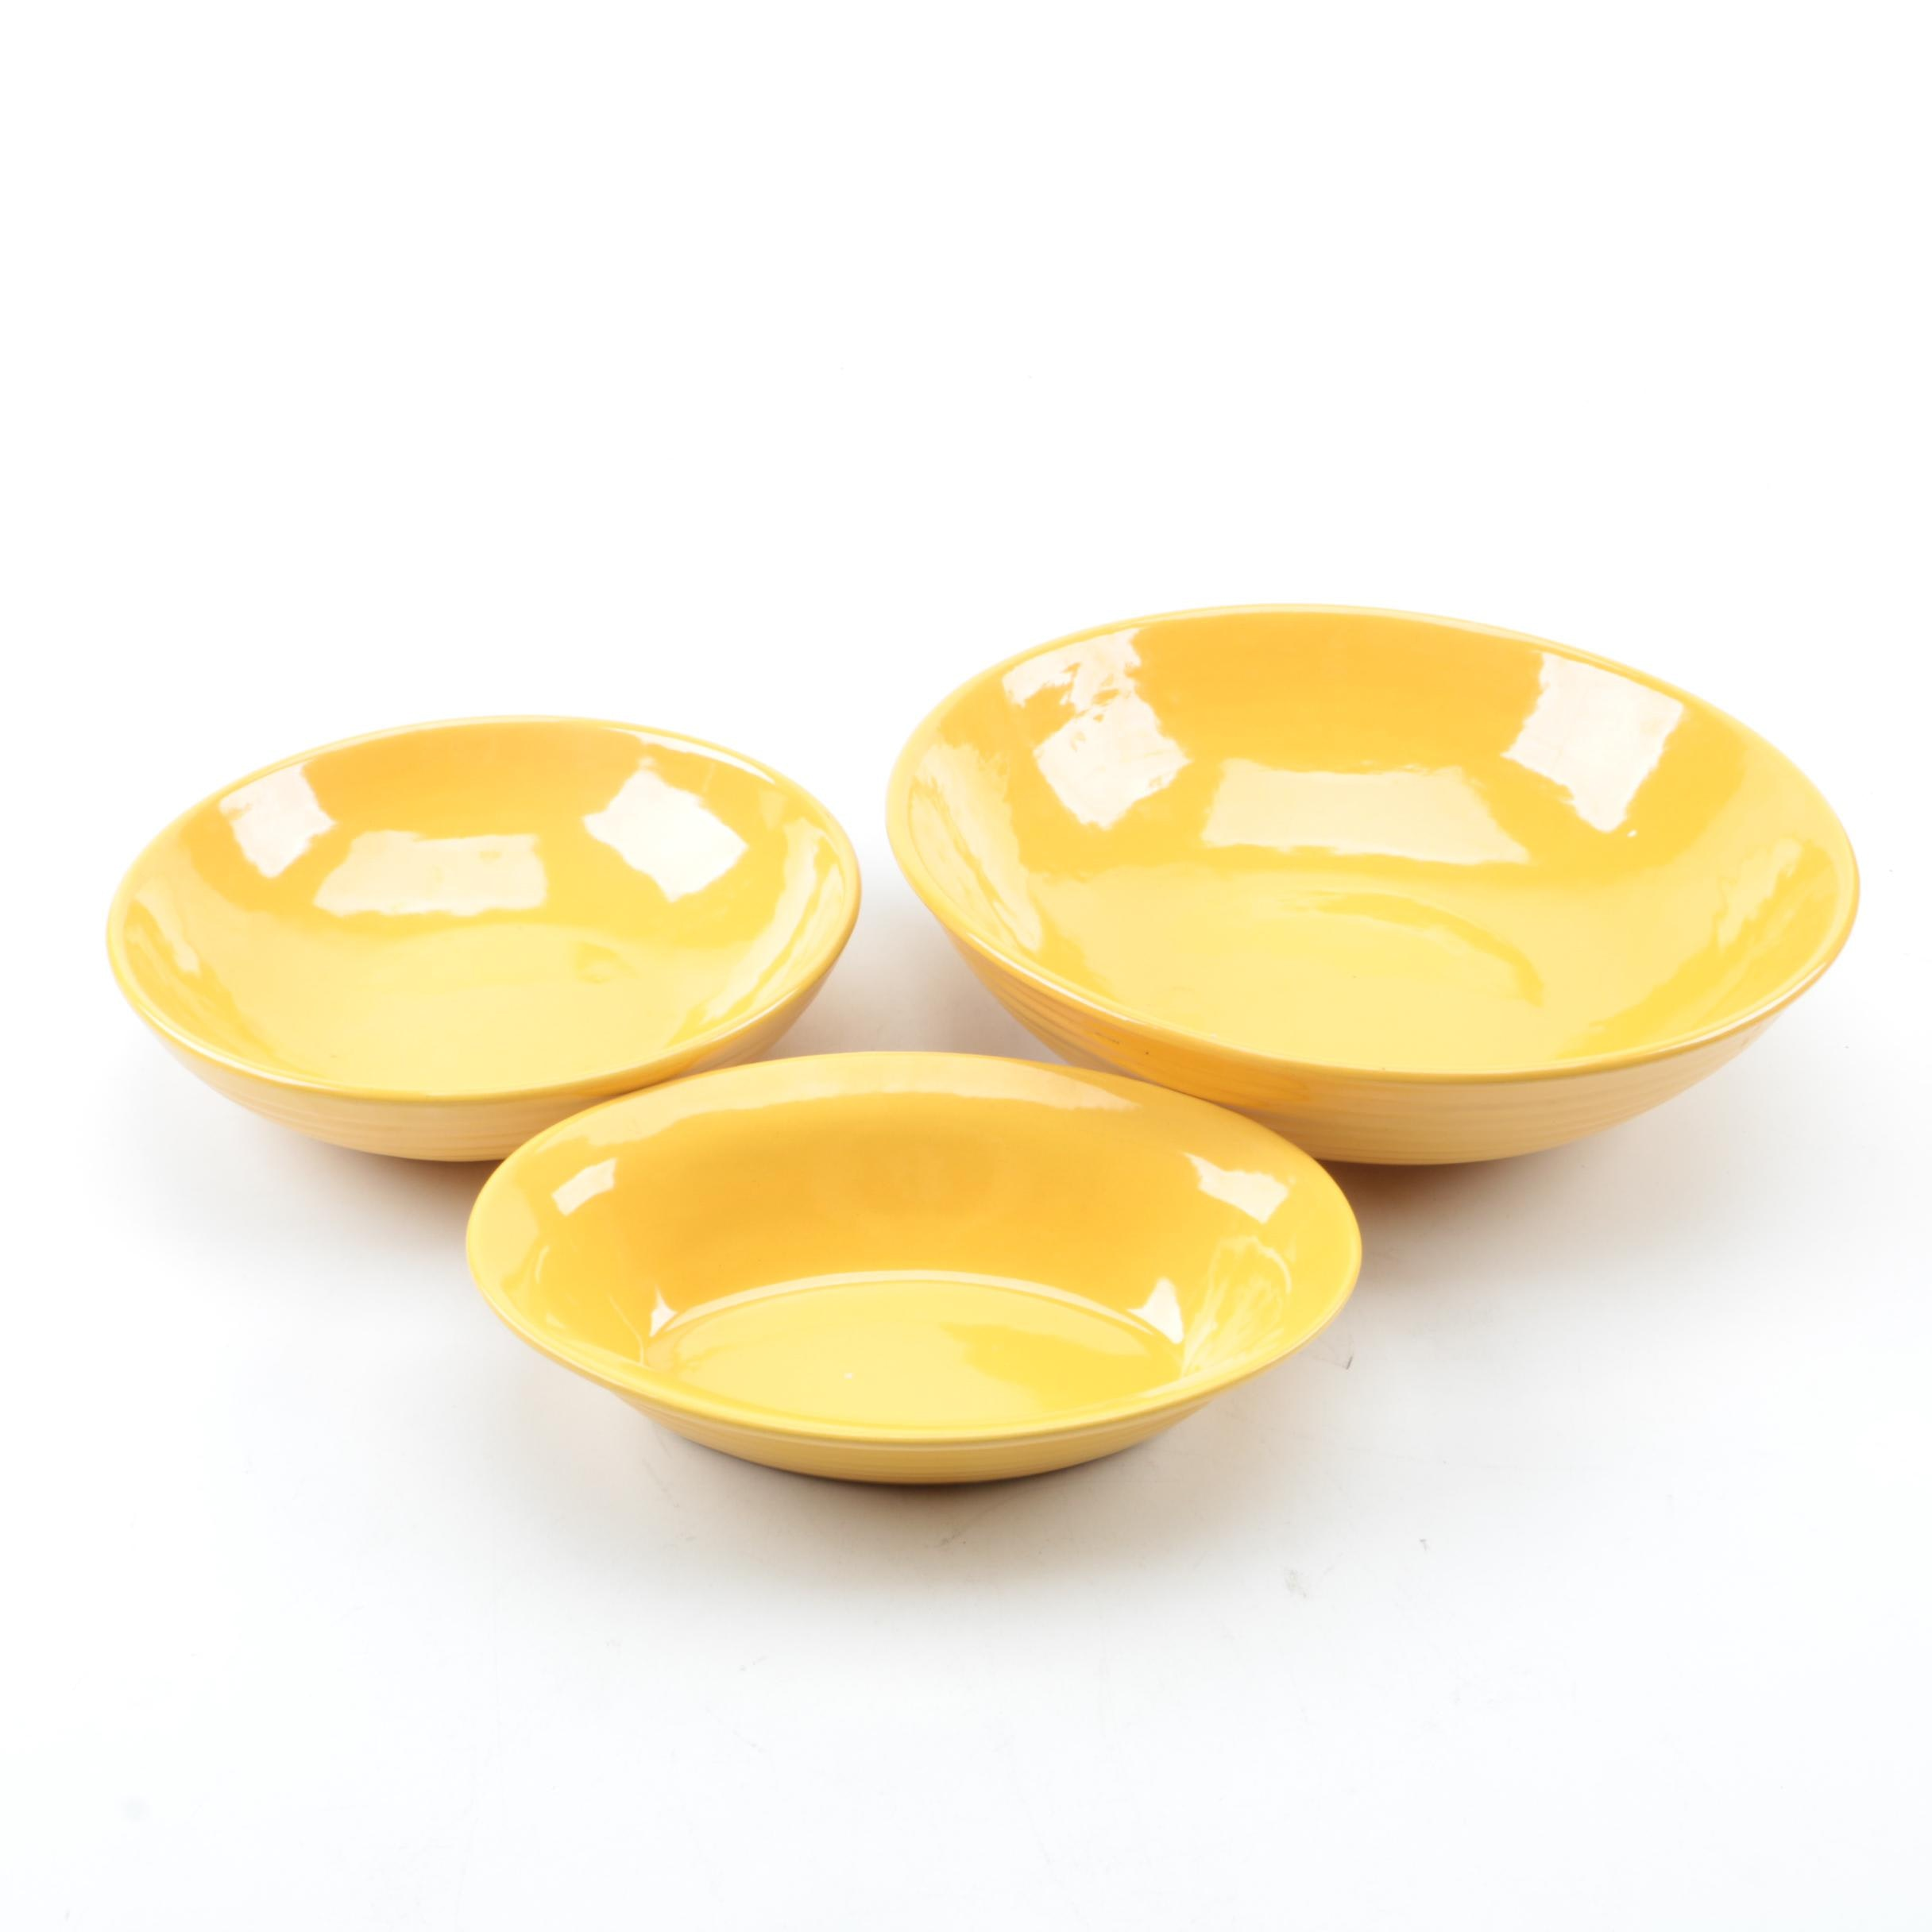 Vintage Bauer Pottery Bright Yellow Bowls